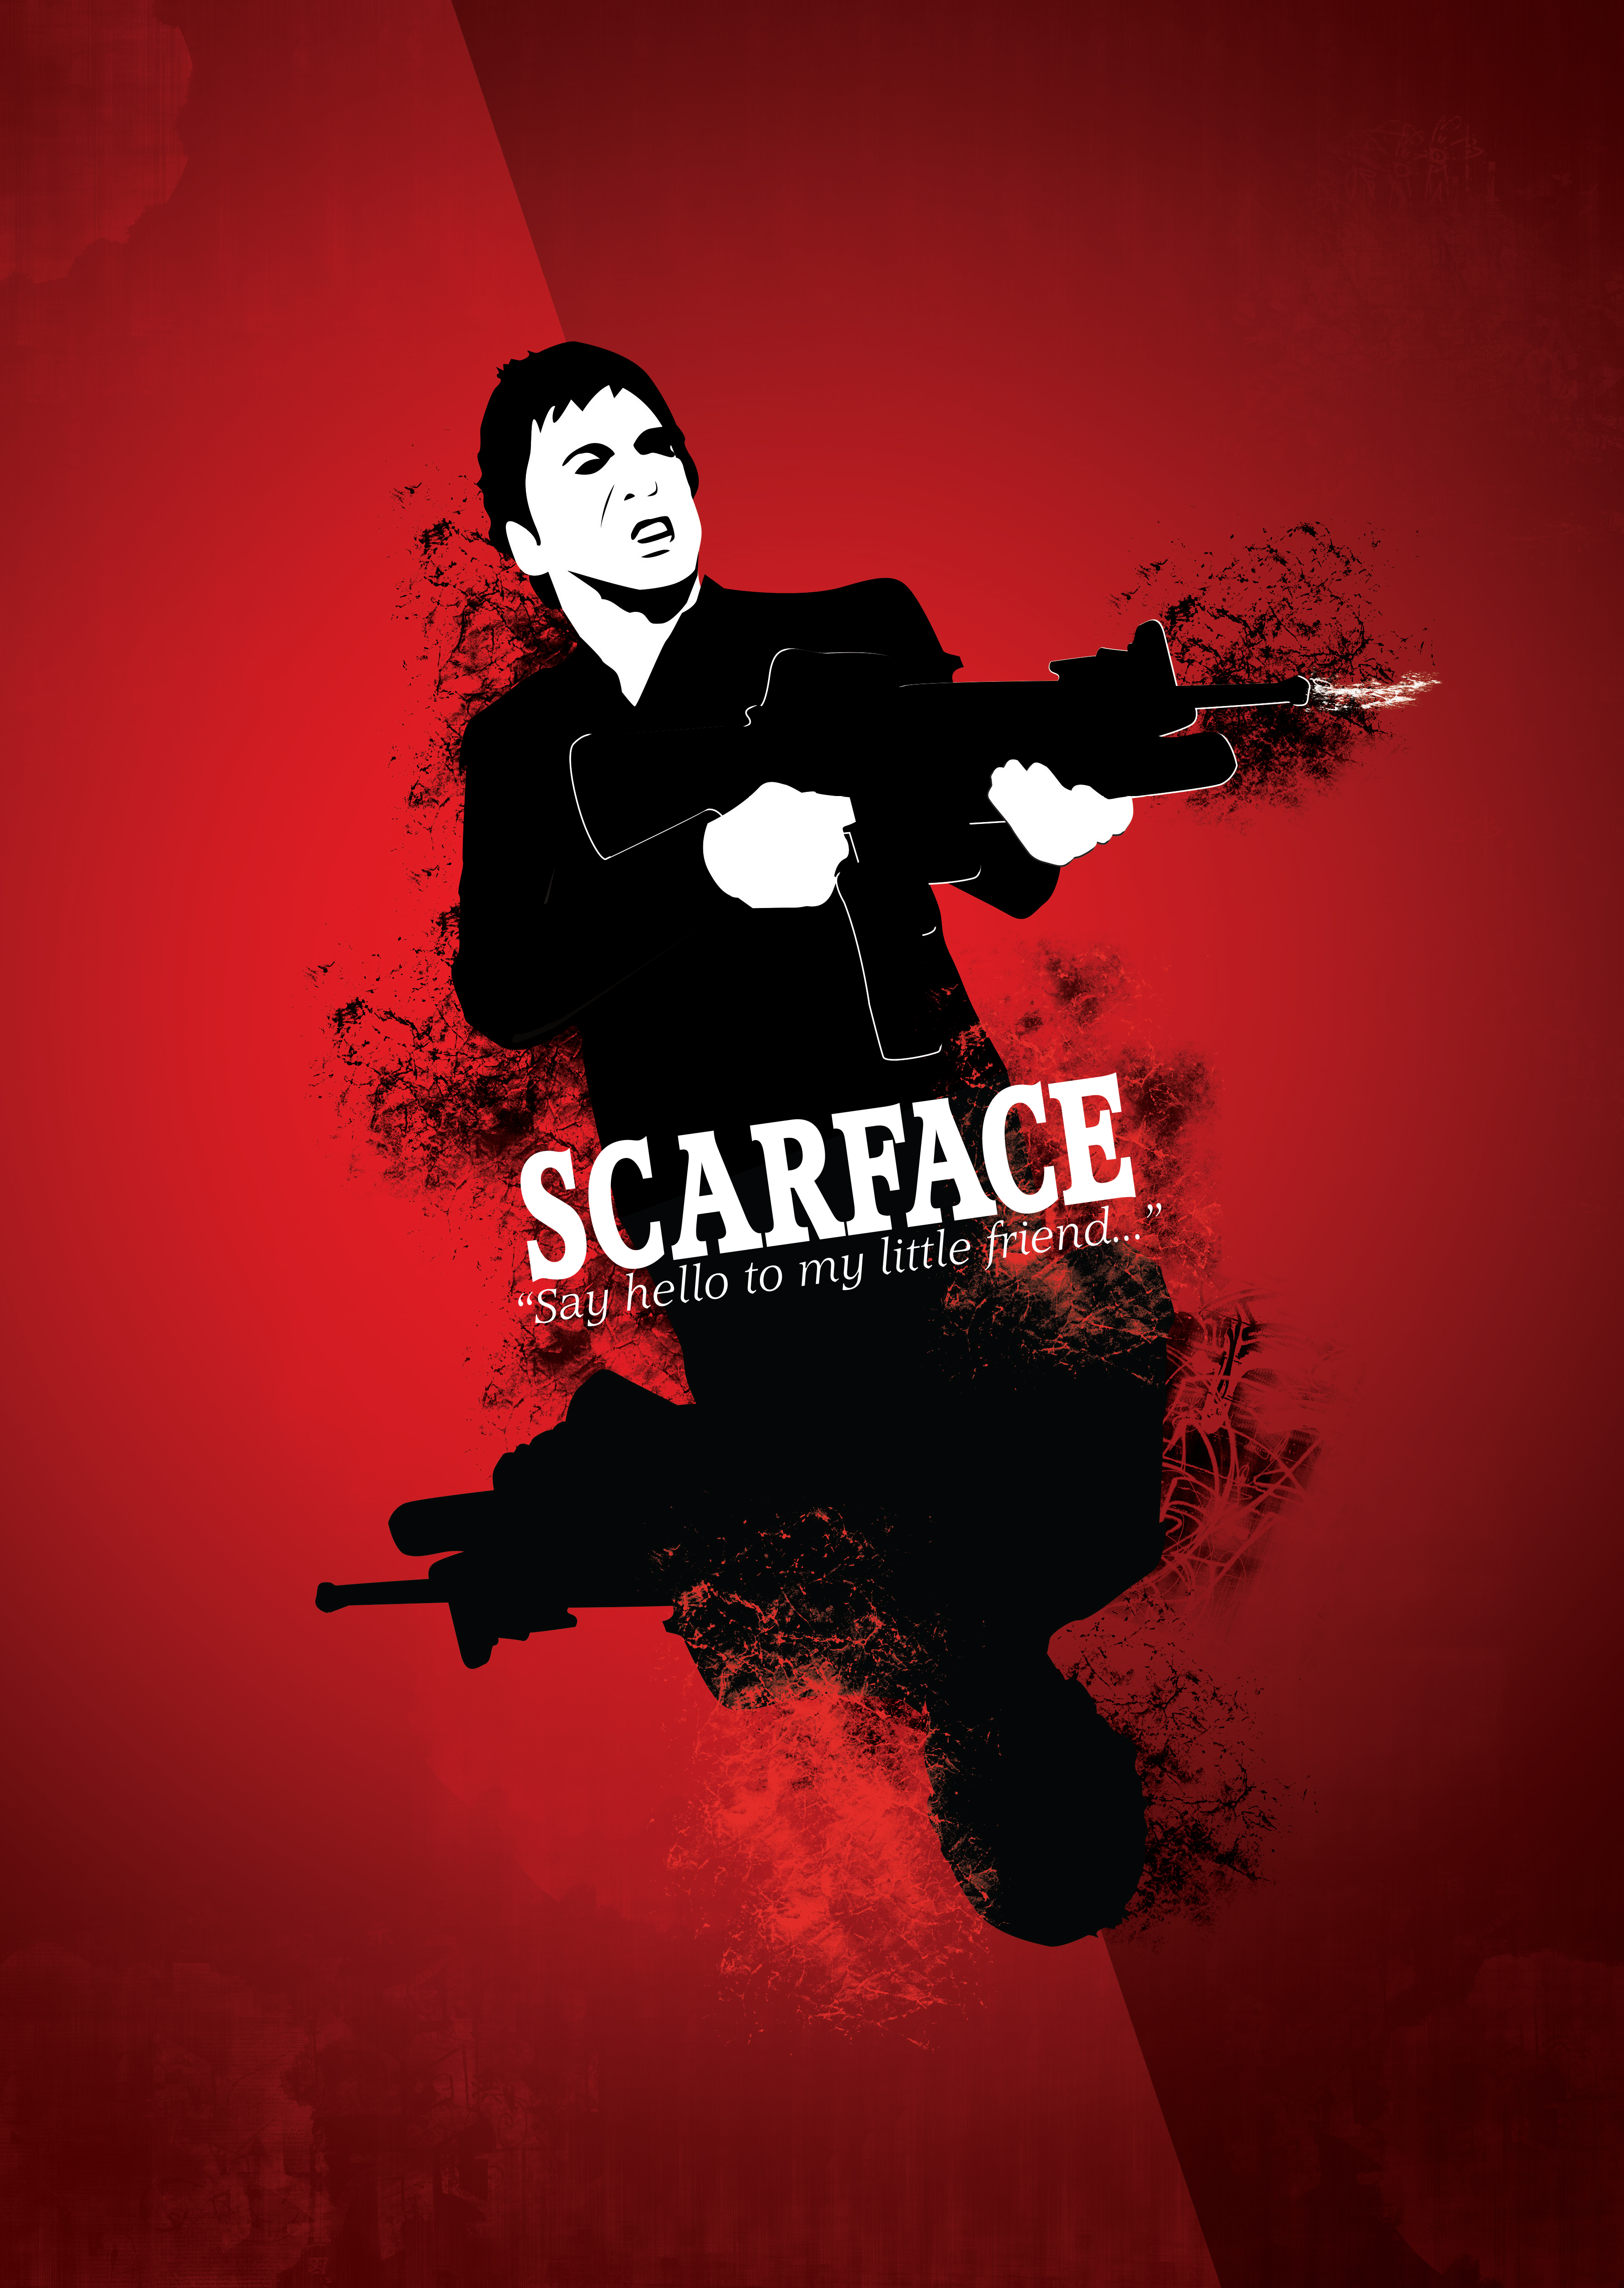 Scarface Wallpaper Say Hello To My Little Friend